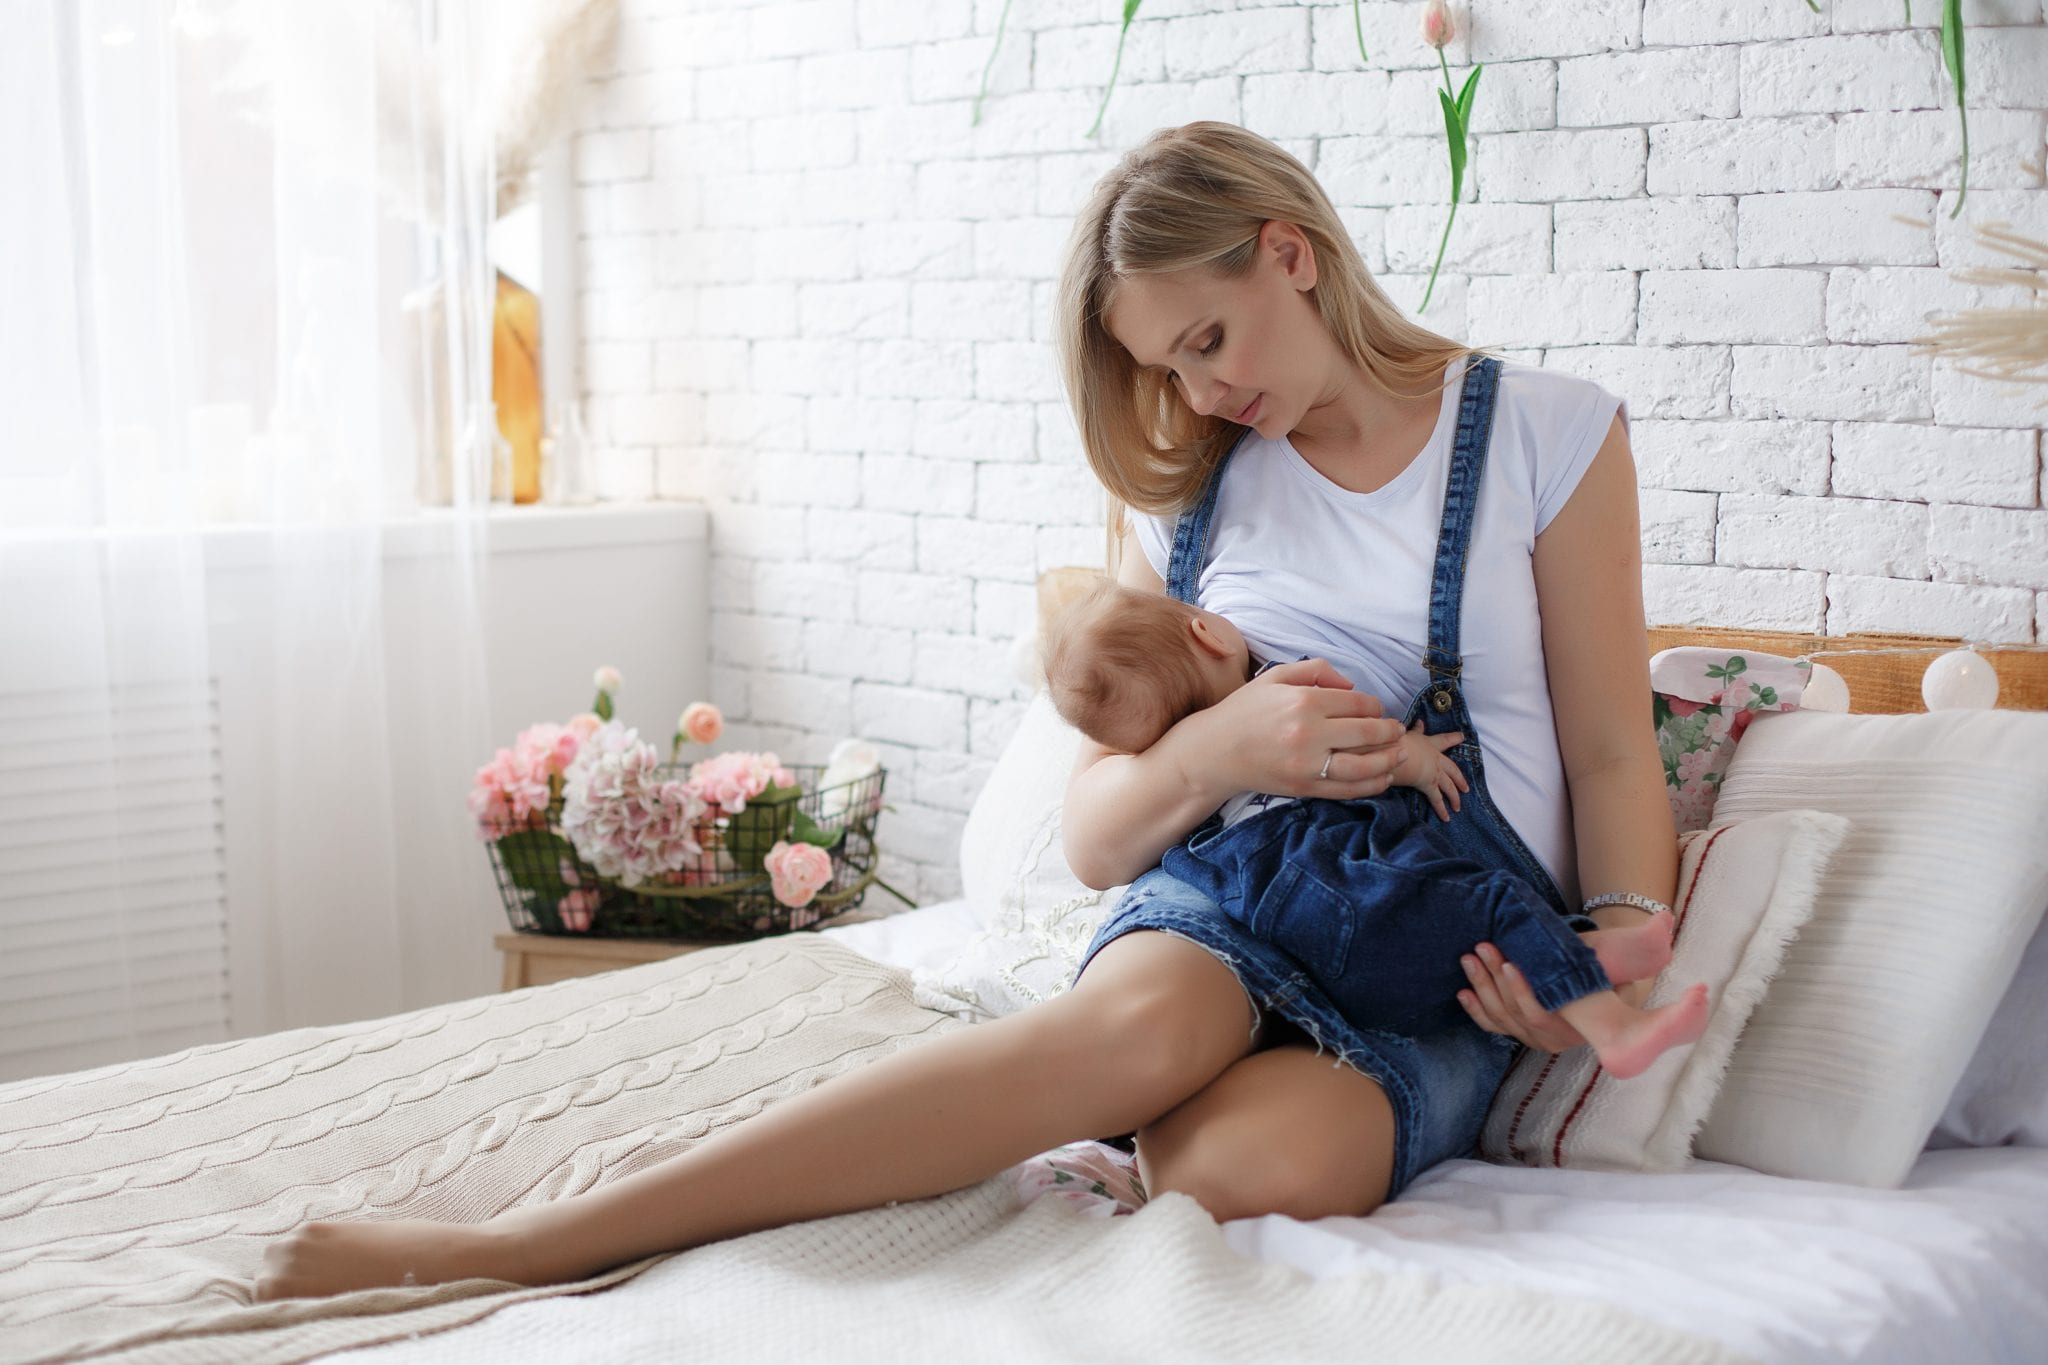 Breastfeeding tips that are a game changer #breastfeedingtips #breastfeedinghacks